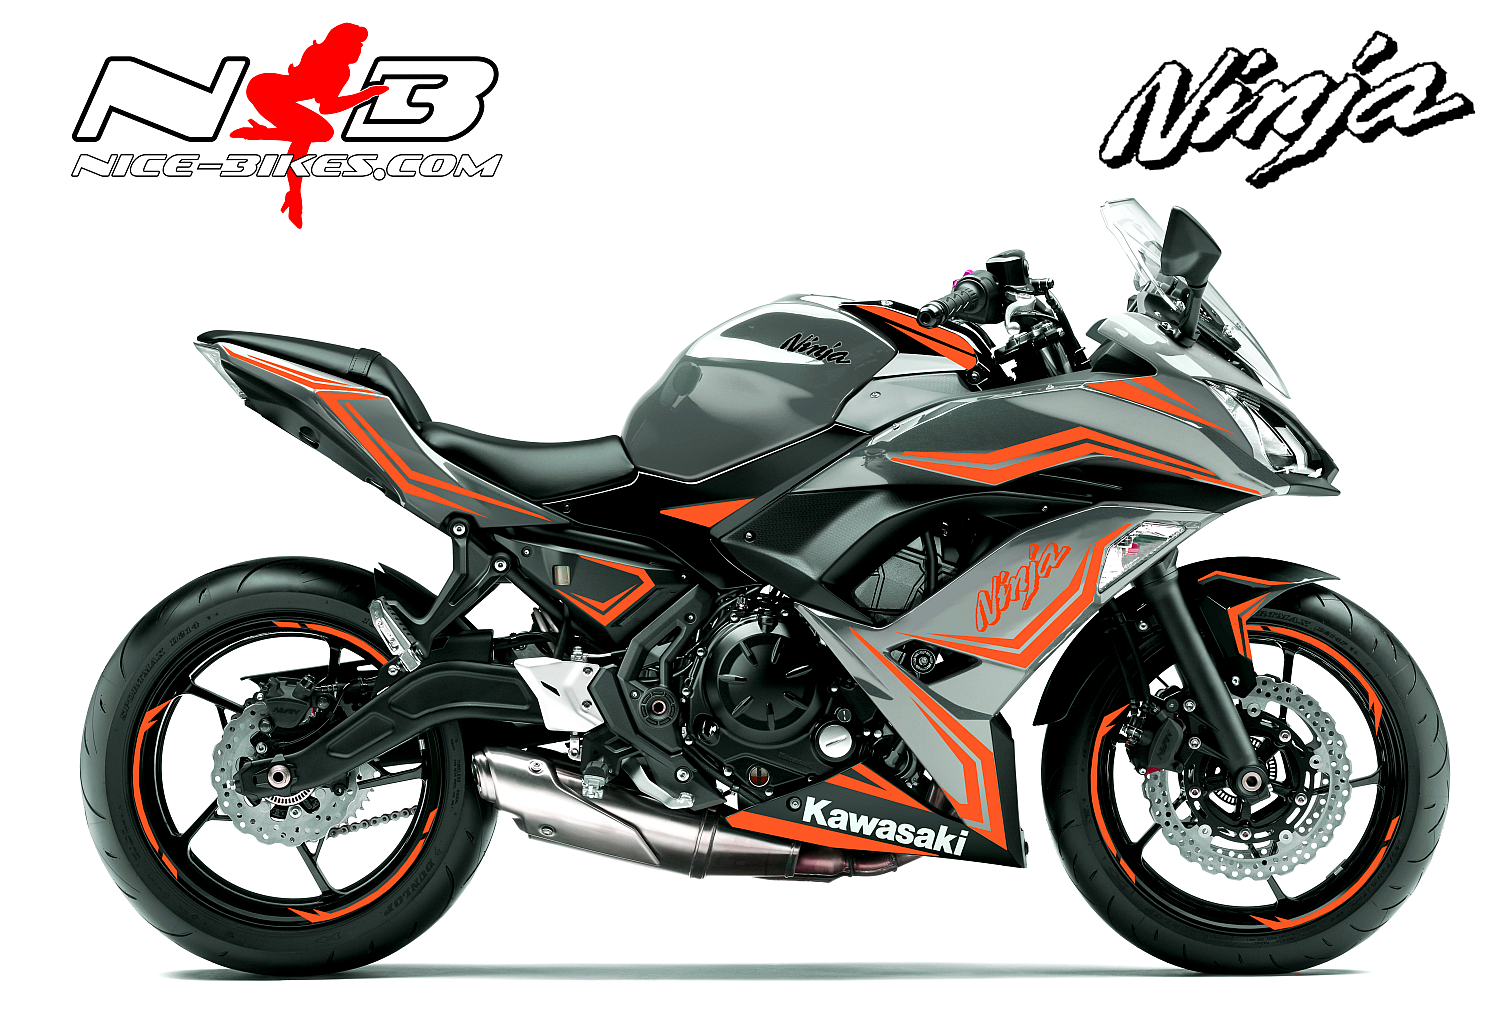 Ninja 650 Foliendekor orange für Graue Maschine 2018-